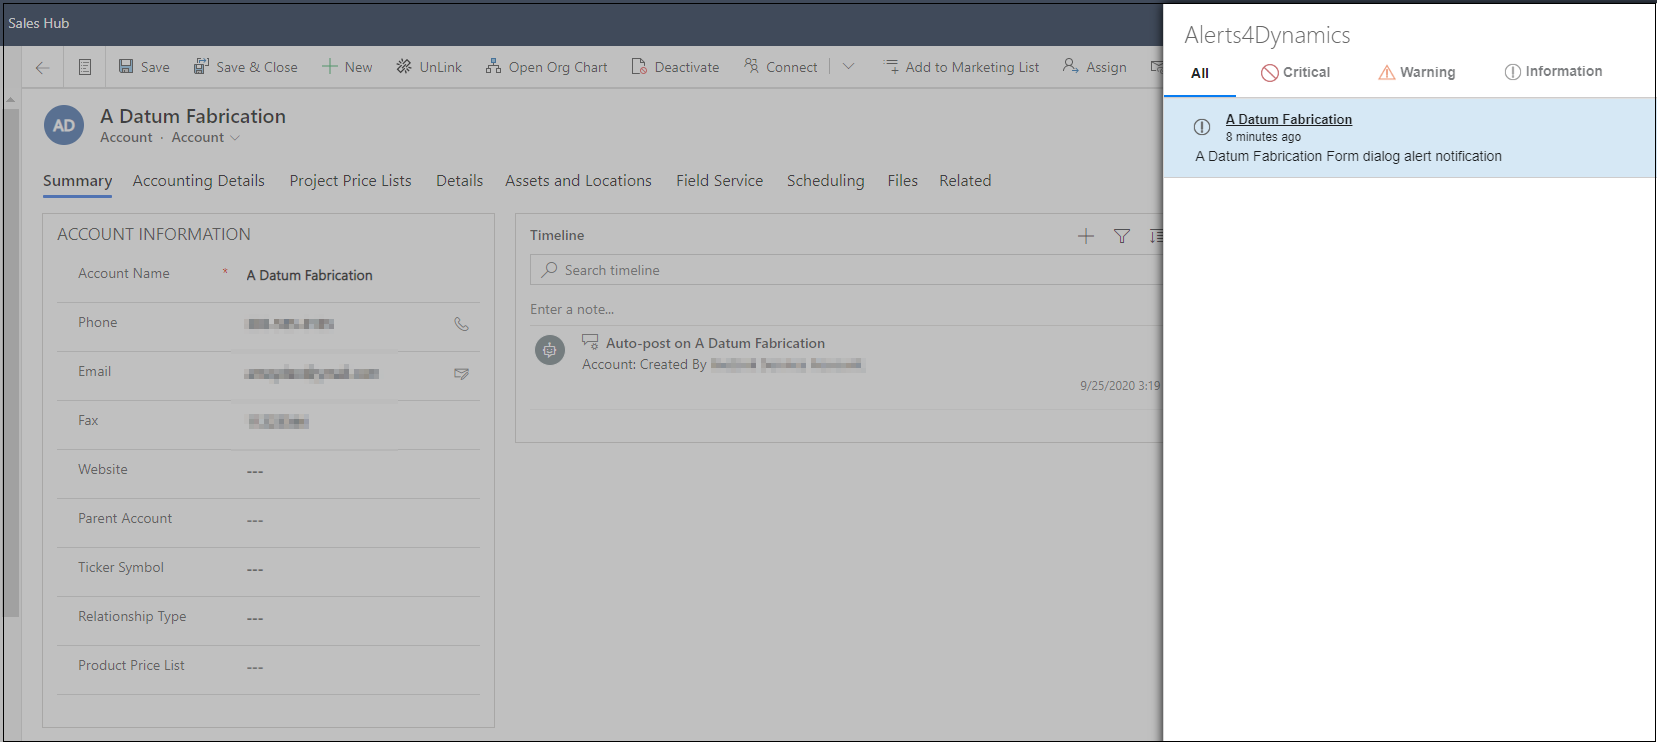 manage Alerts & Notifications within Dynamics 365 CRM